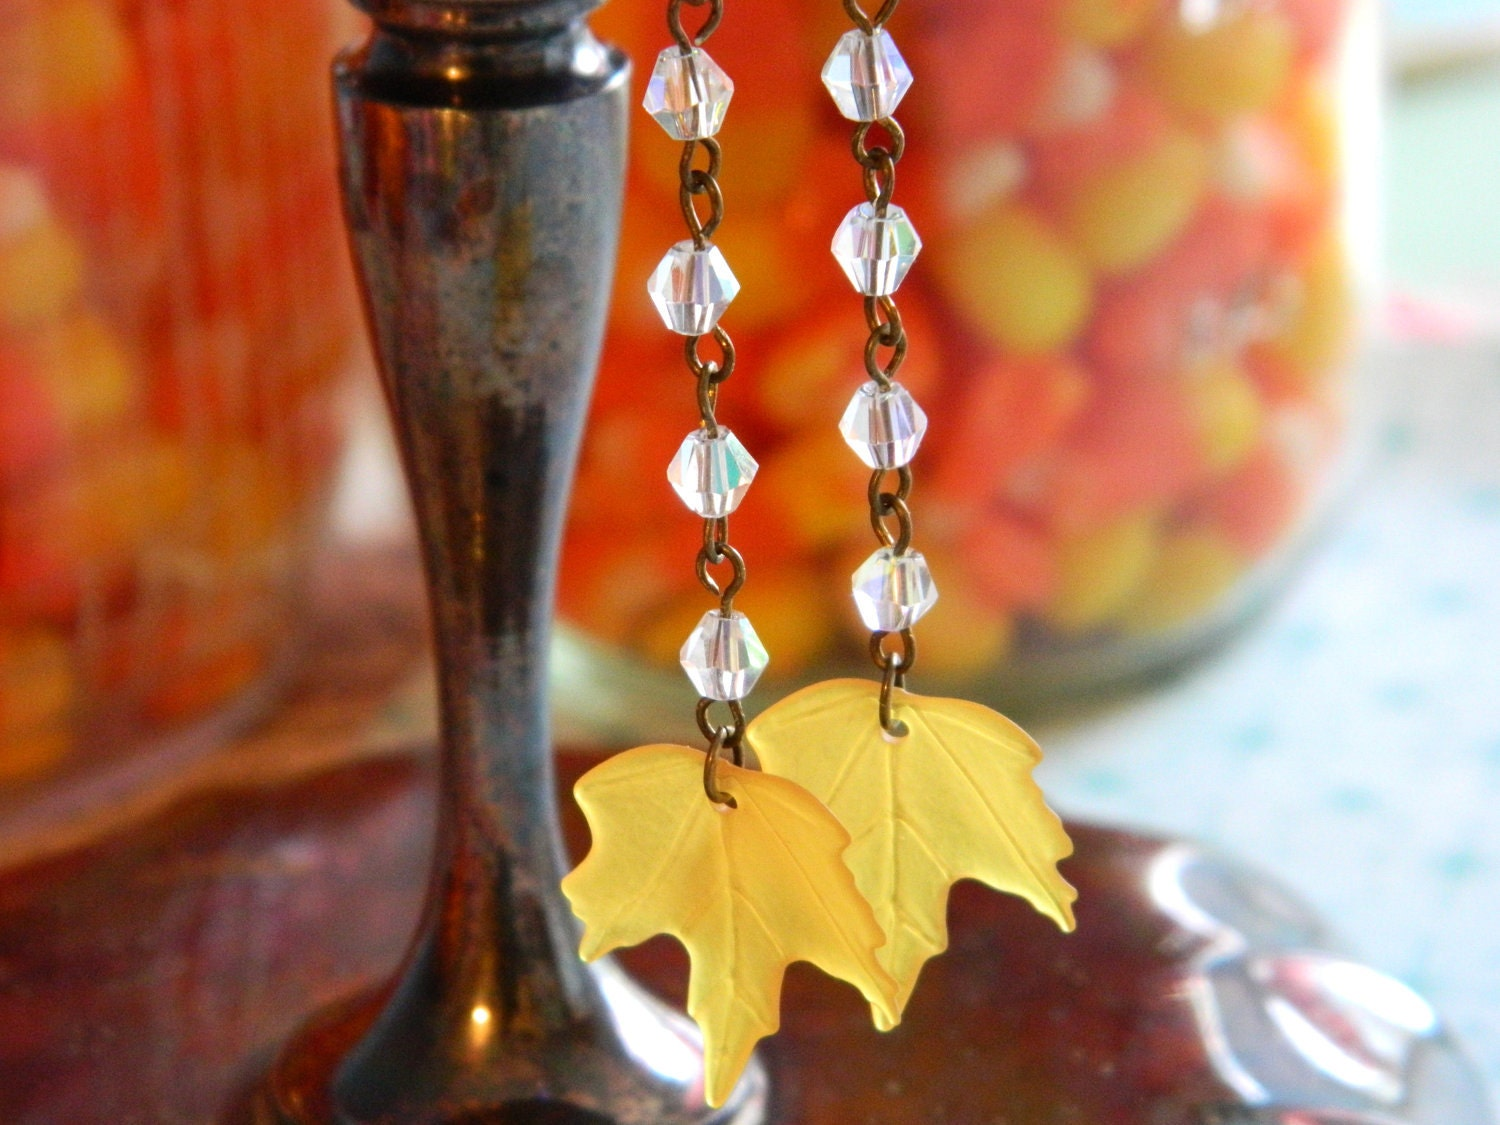 Earrings Vintage Autumn Fall Yellow Lucite Leaves AB Swarovski Crystals - Rain Drops on Harvest Leaves